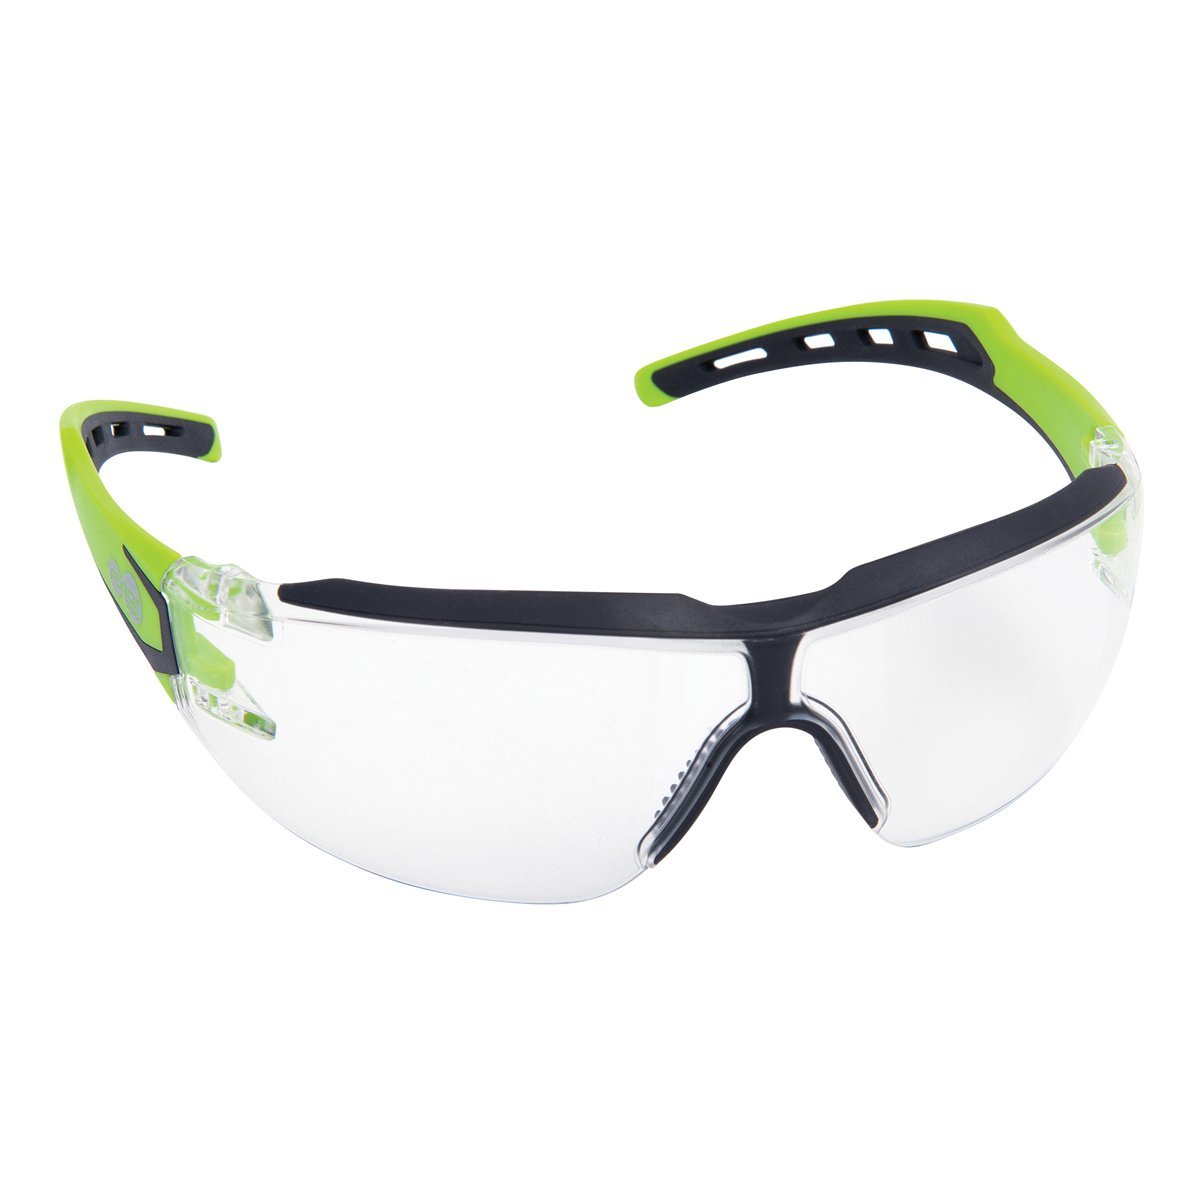 Force360 24/7 Clear Lens Safety Spectacle